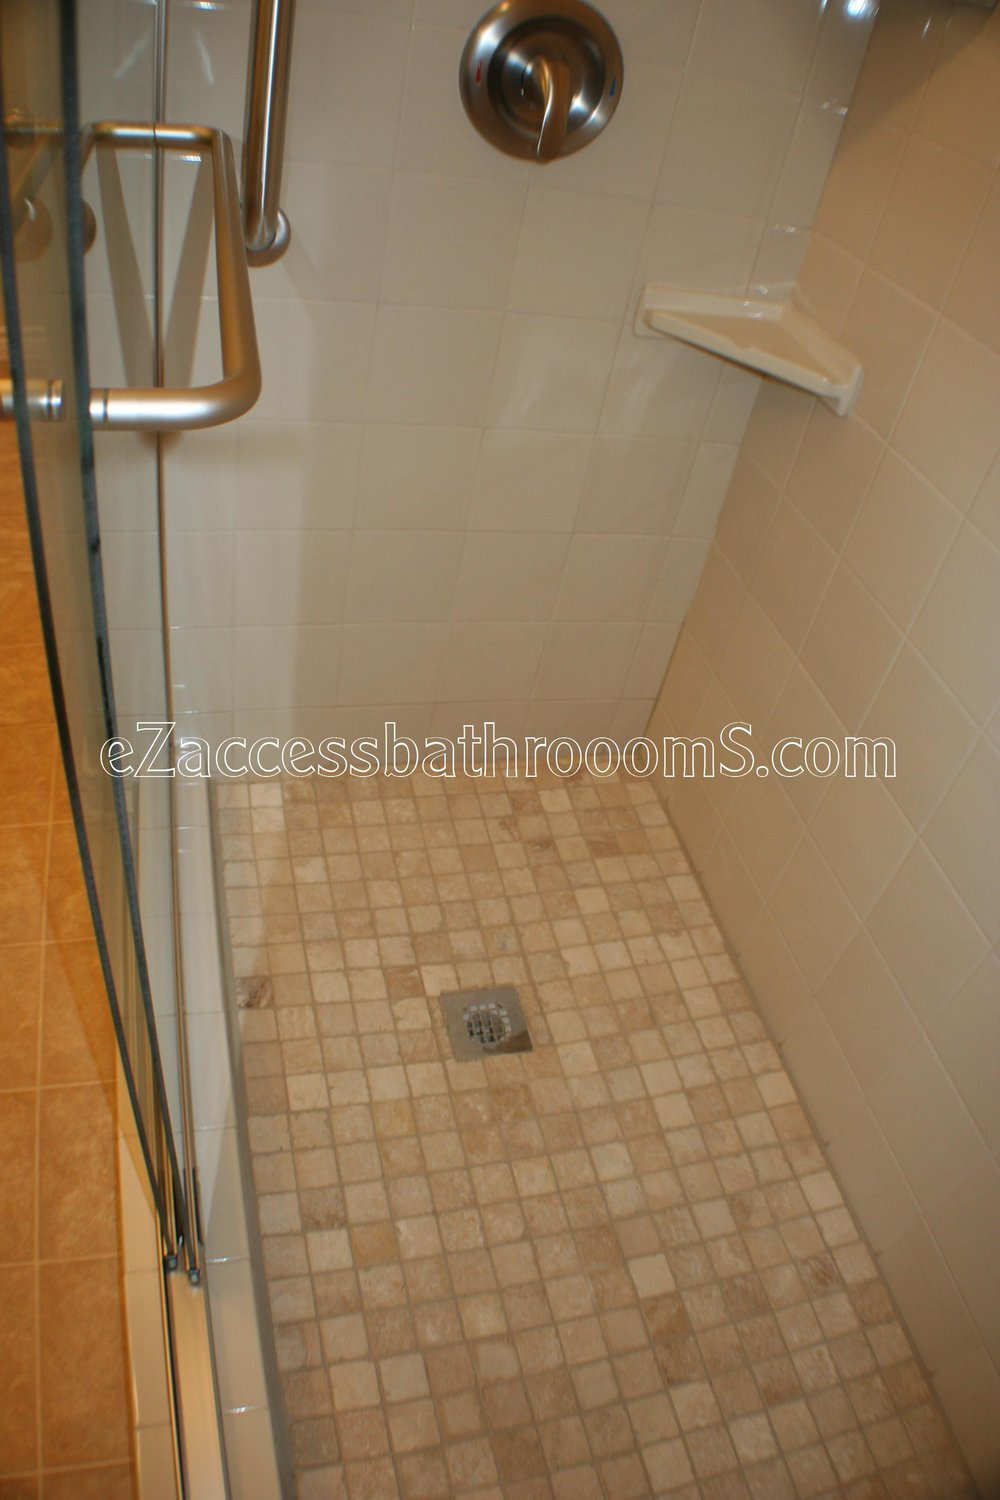 TUBTOSHOWERS CONVERSIONS EZACCESSBATHROOMS.COM 832202843 BRYANT 140.JPG